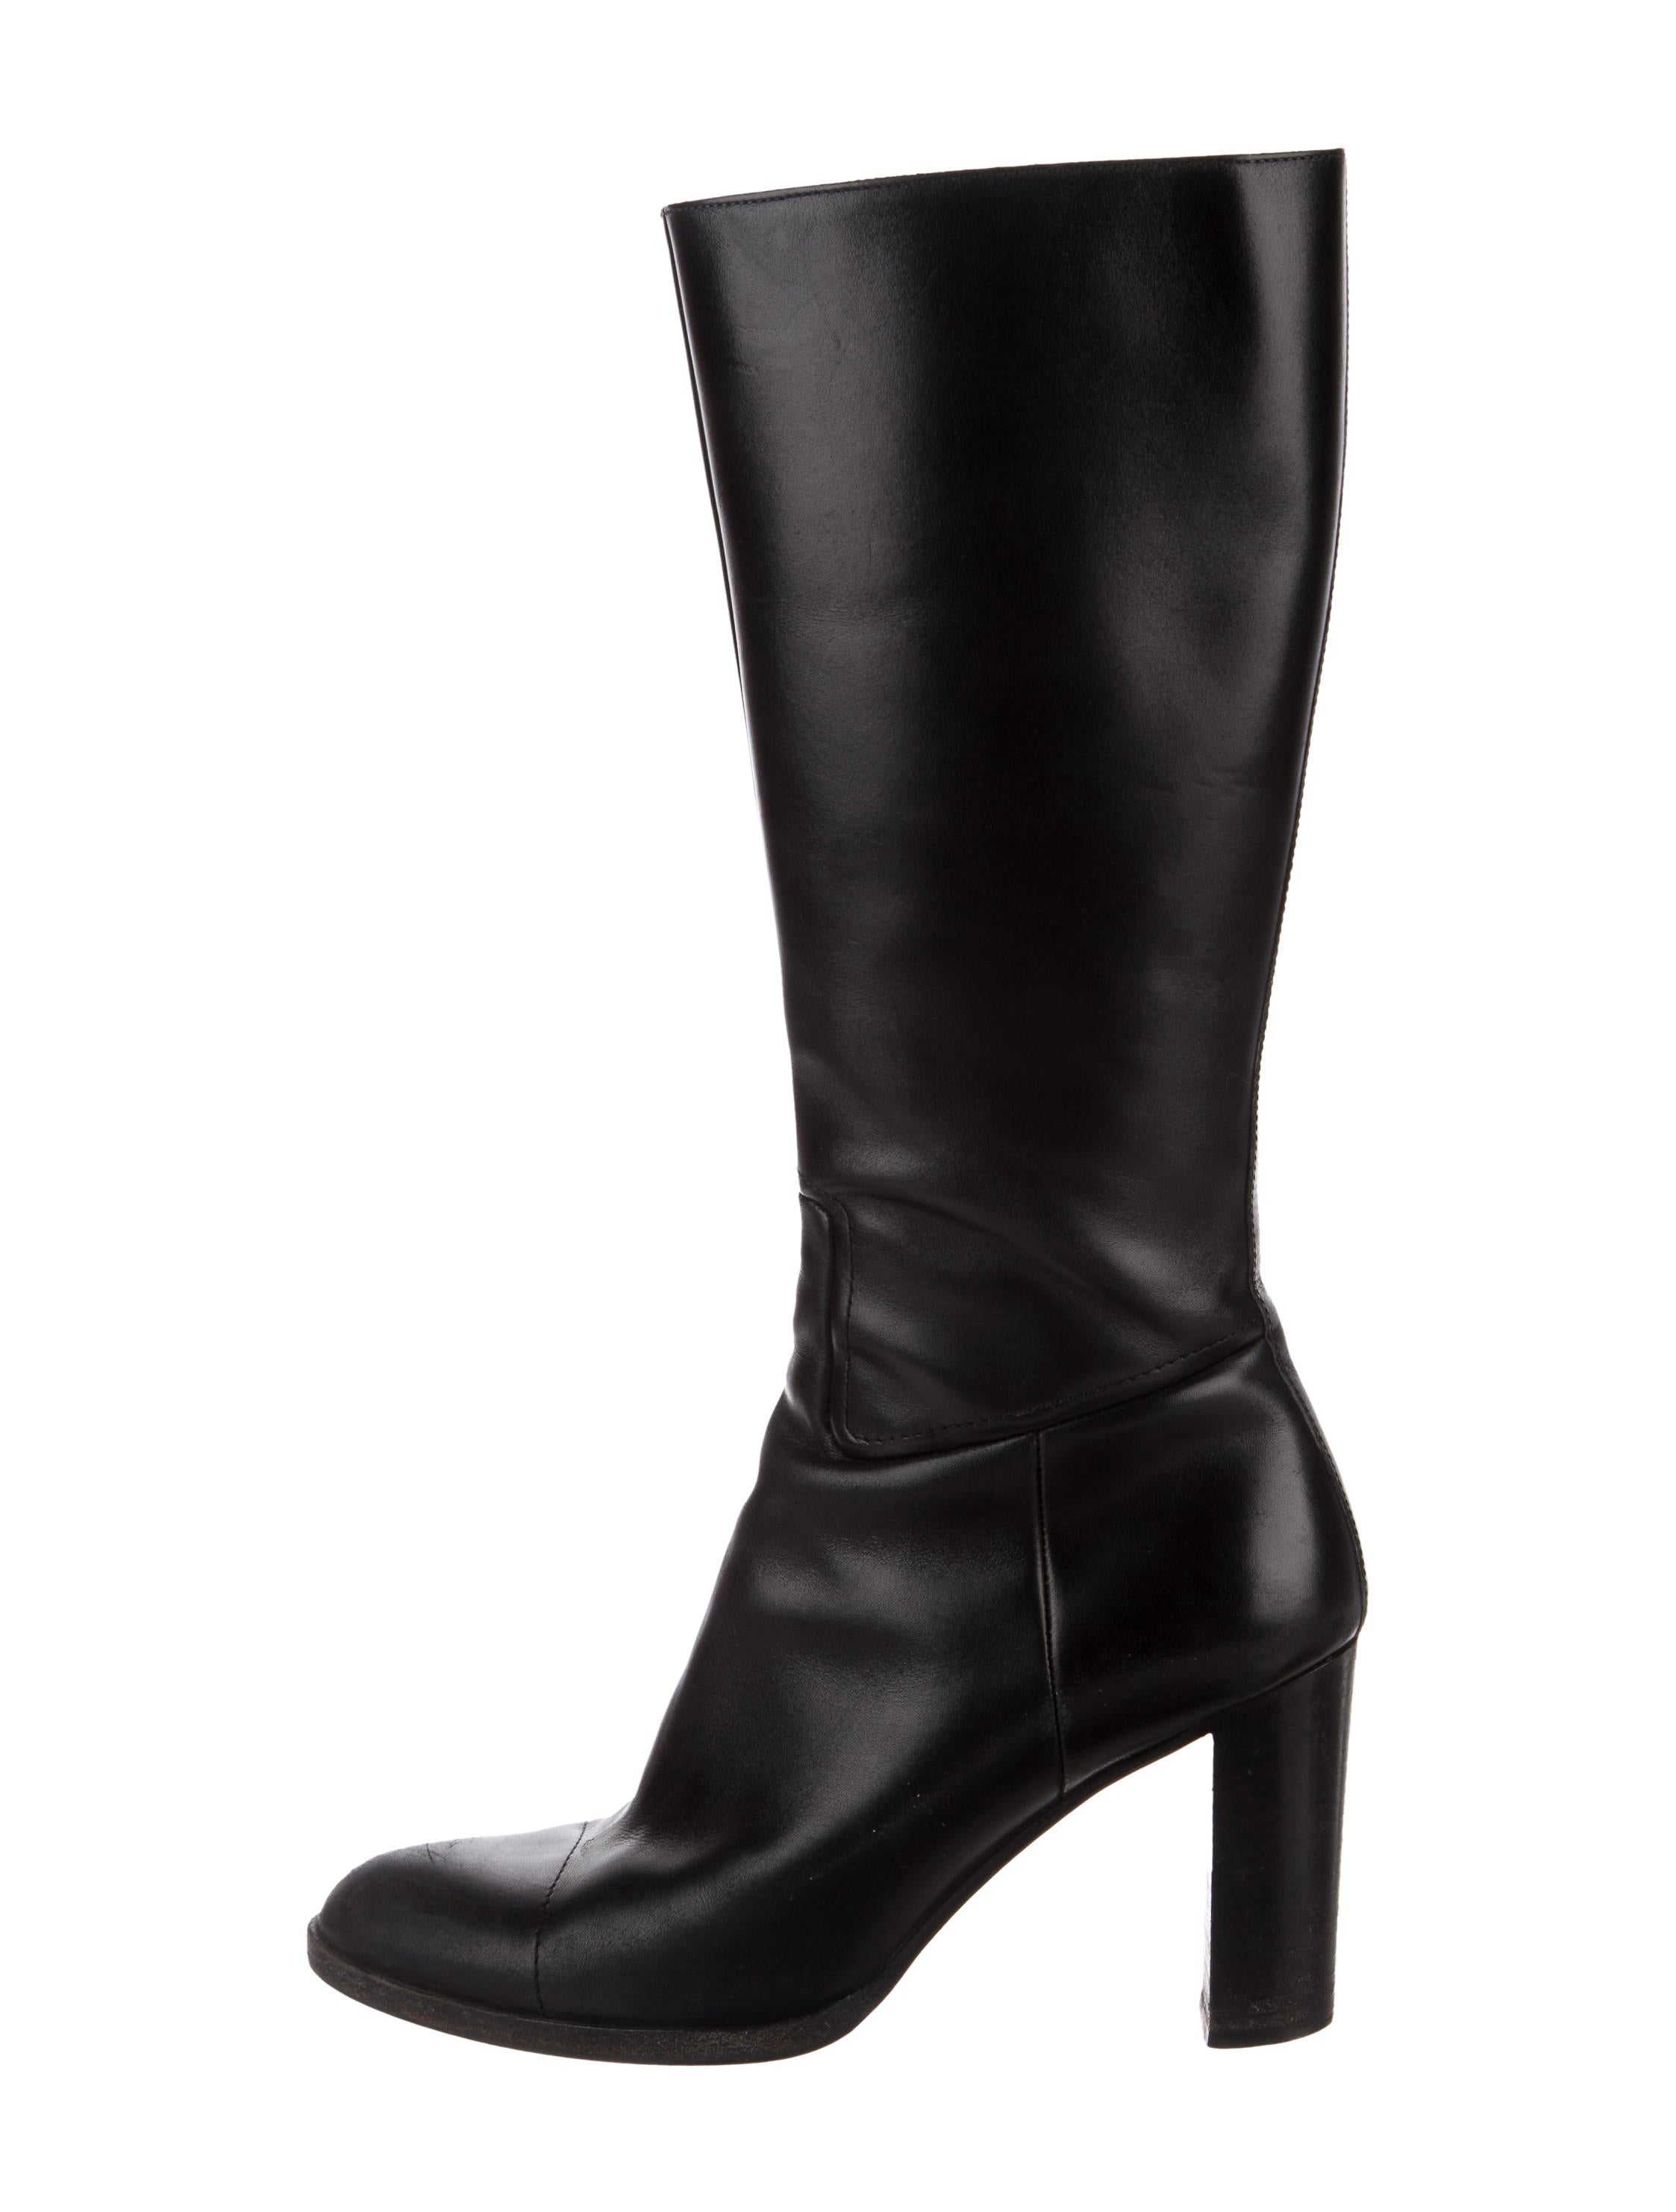 Jil Sander Leather Pointed-Toe Mid-Calf Boots outlet big discount buy cheap online find great for sale outlet fast delivery IsiODhYs0x